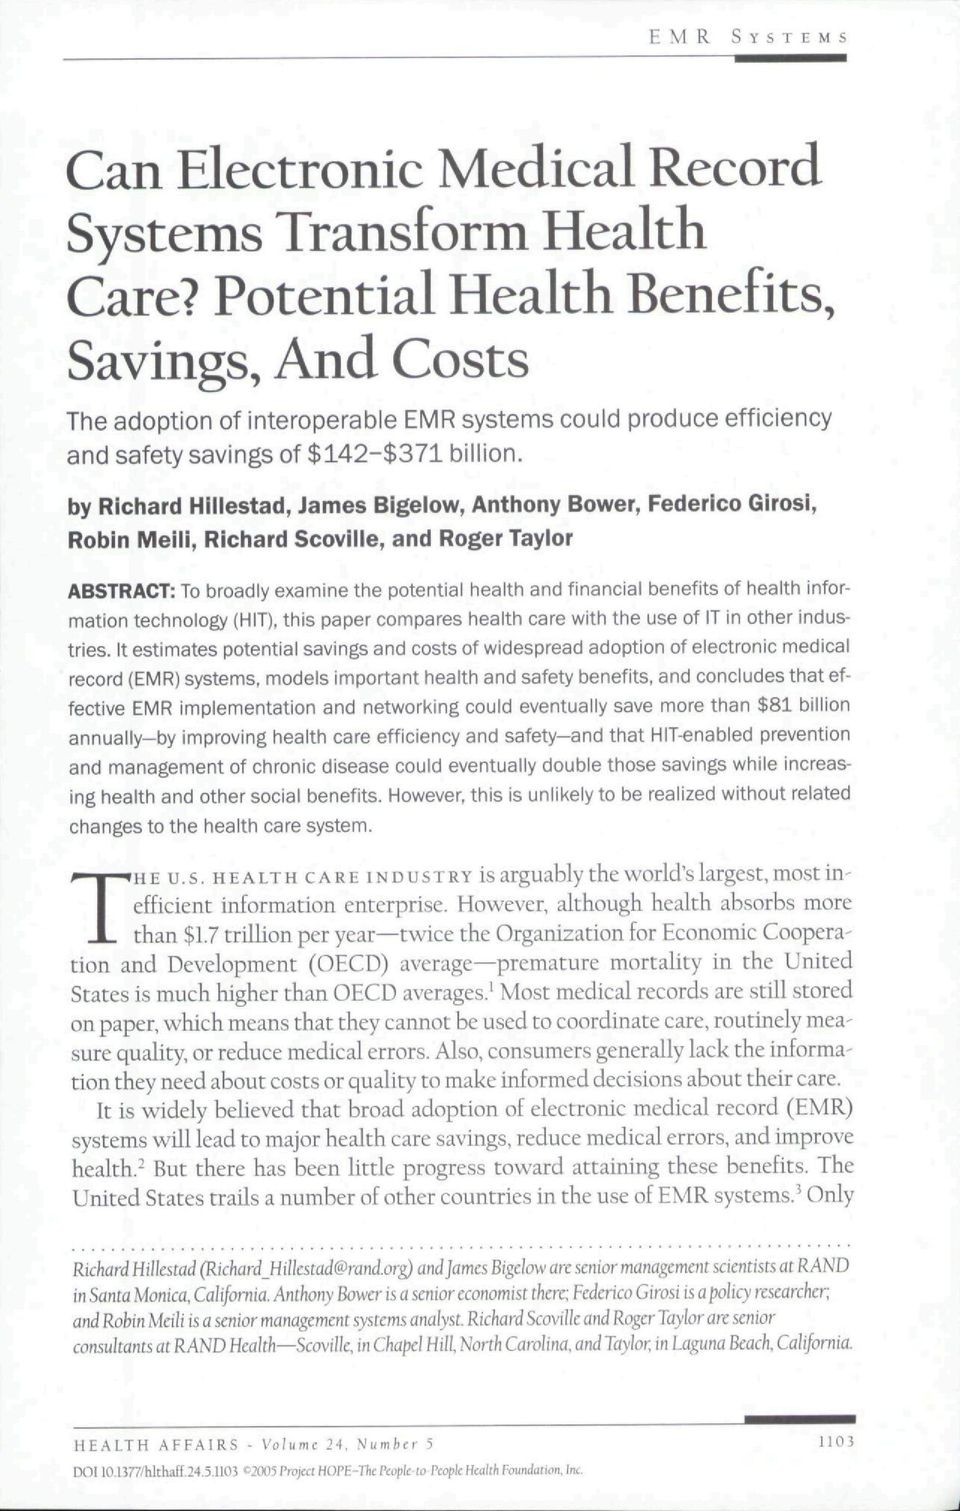 by Richard Hillestad, James Bigeiow, Anthony Bower, Federico Girosi, Robin Meiii, Richard Scoviile, and Roger Tayior ABSTRACT: To broadly examine the potential health and financial benefits of health